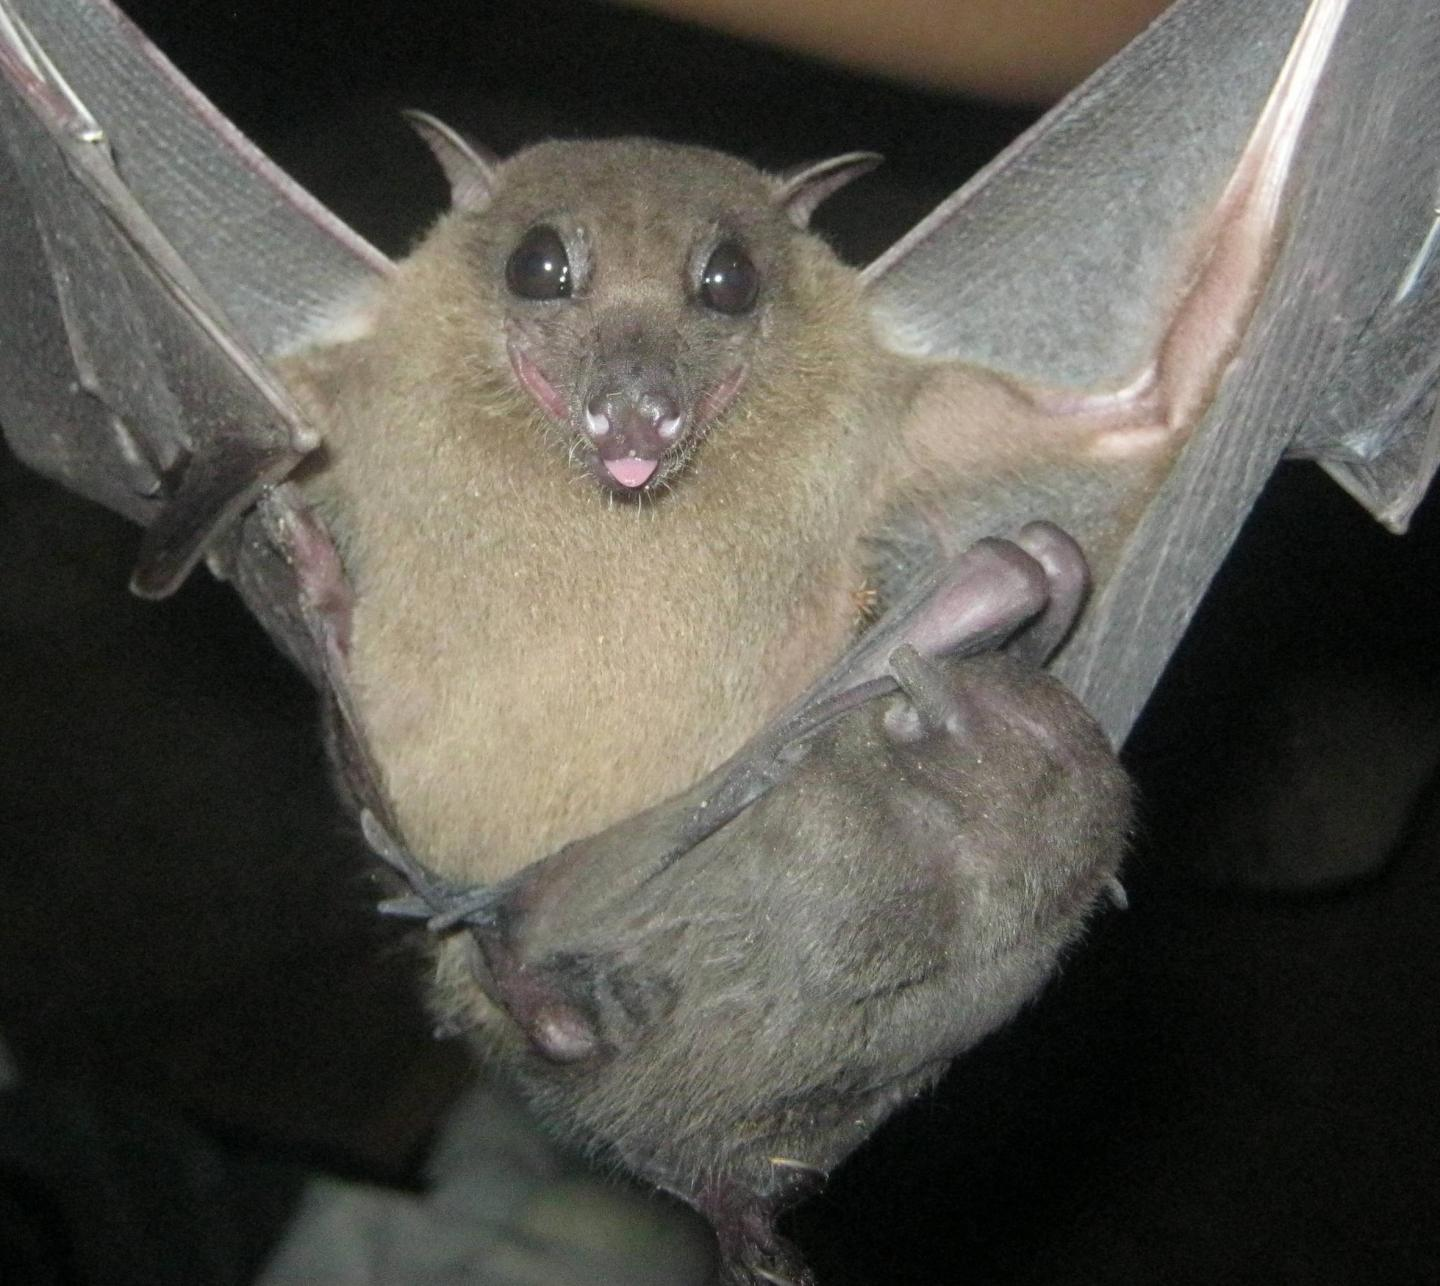 Coronavirus Is Not New, It's Been Evolving Along With Bats For Millions Of Years